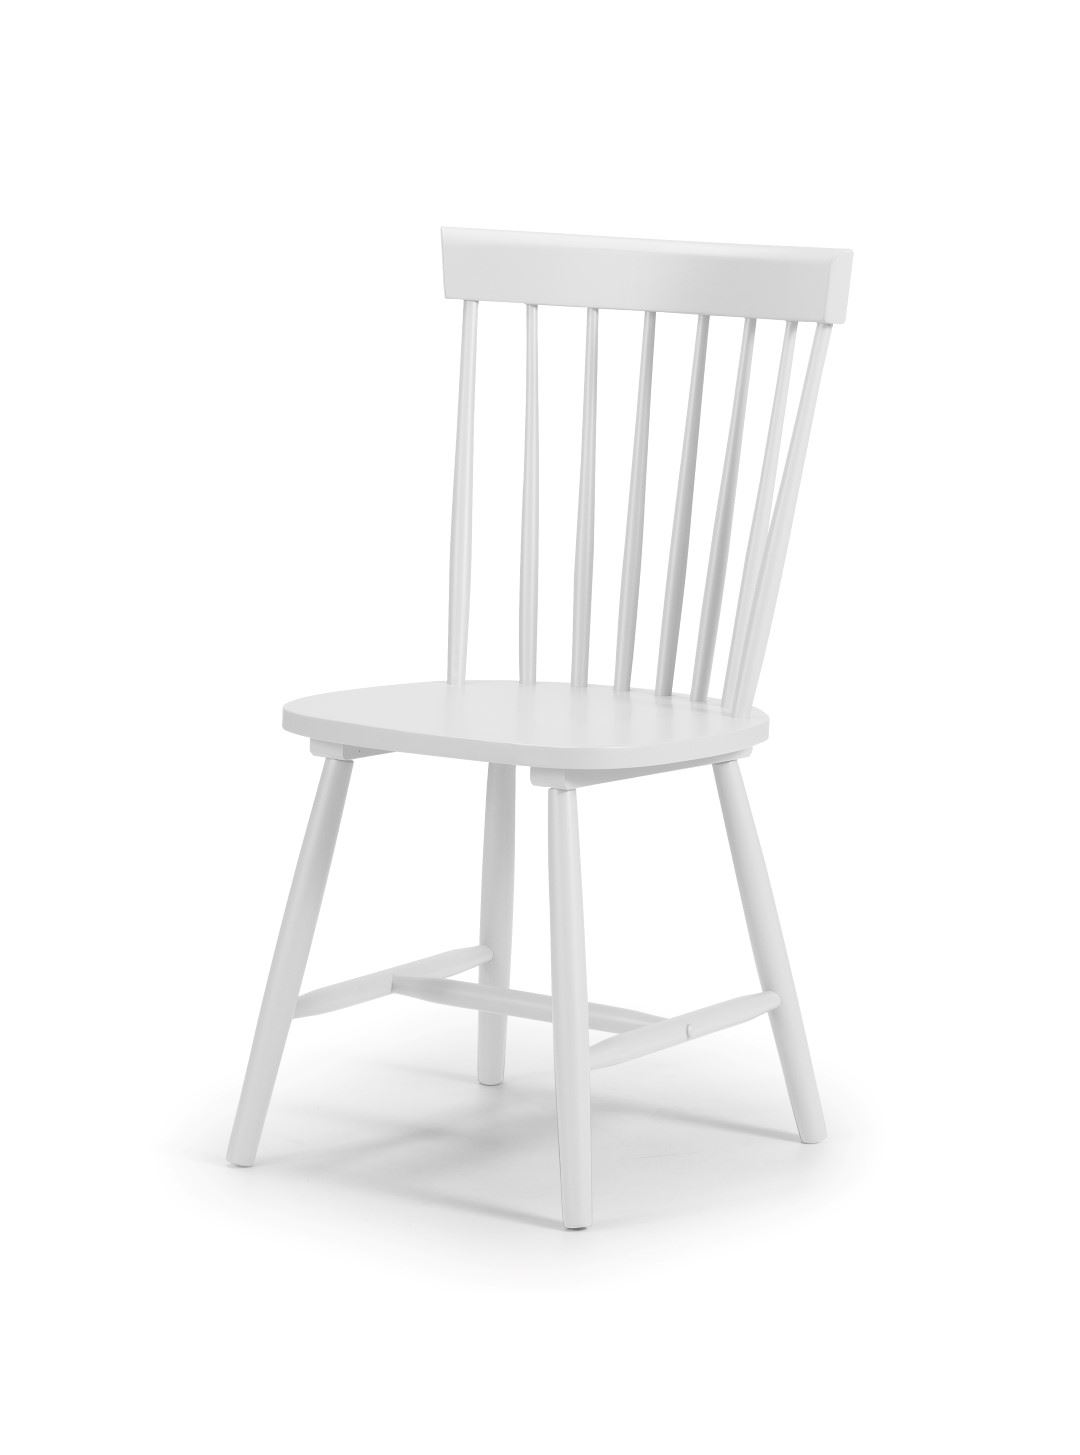 Julian Bowen Torino White Kitchen Dining Chair x 1 Solid Wood Traditional Style